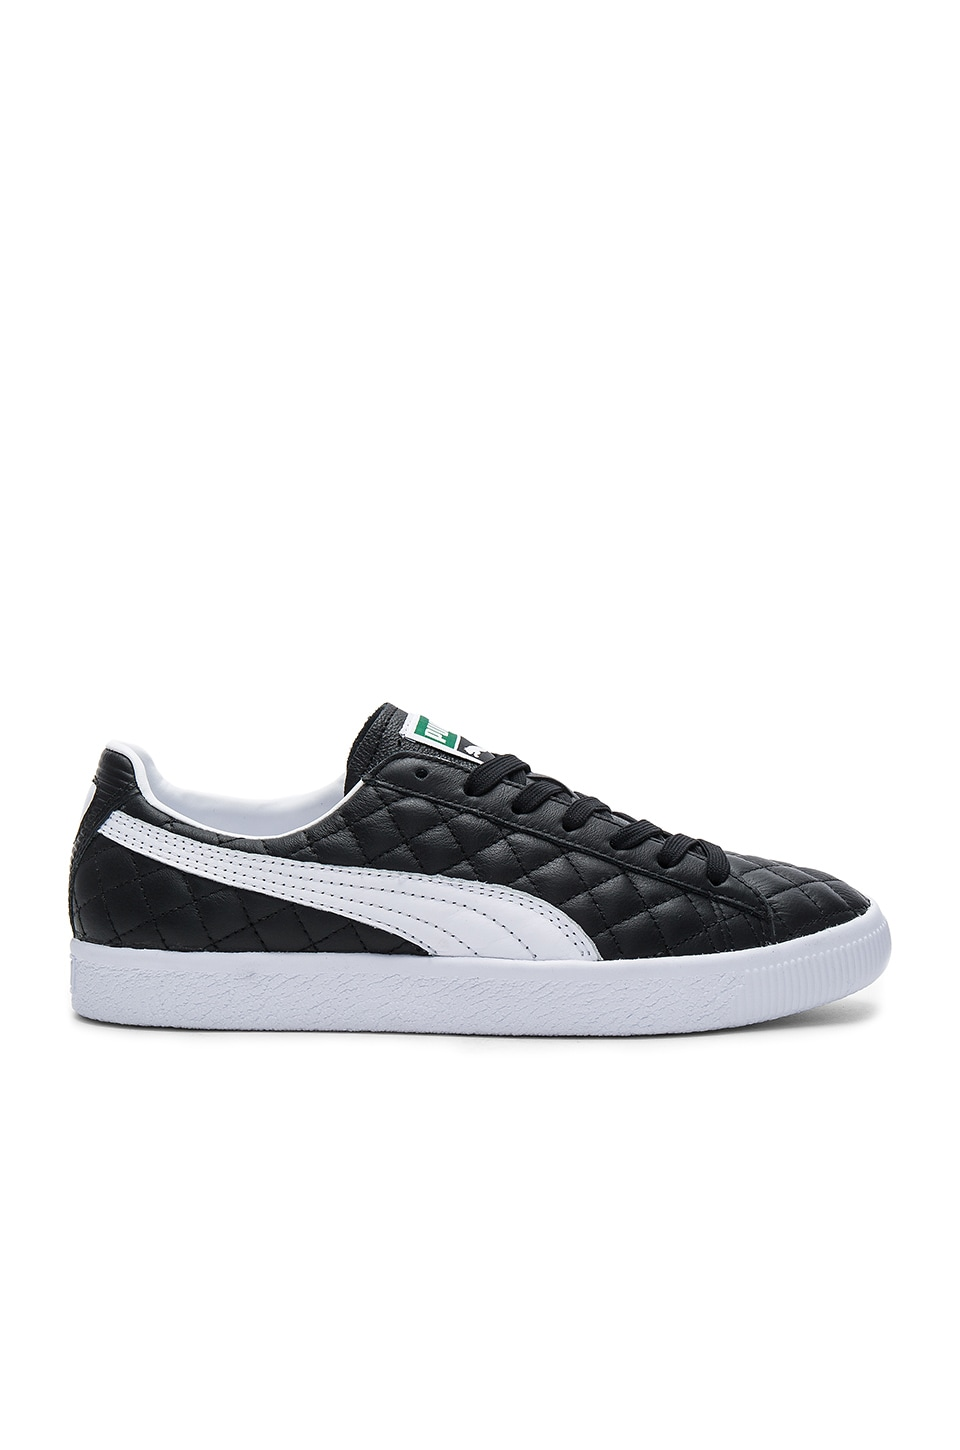 Clyde Dressed Part Deux FM in Puma Black & Puma White by Puma Select